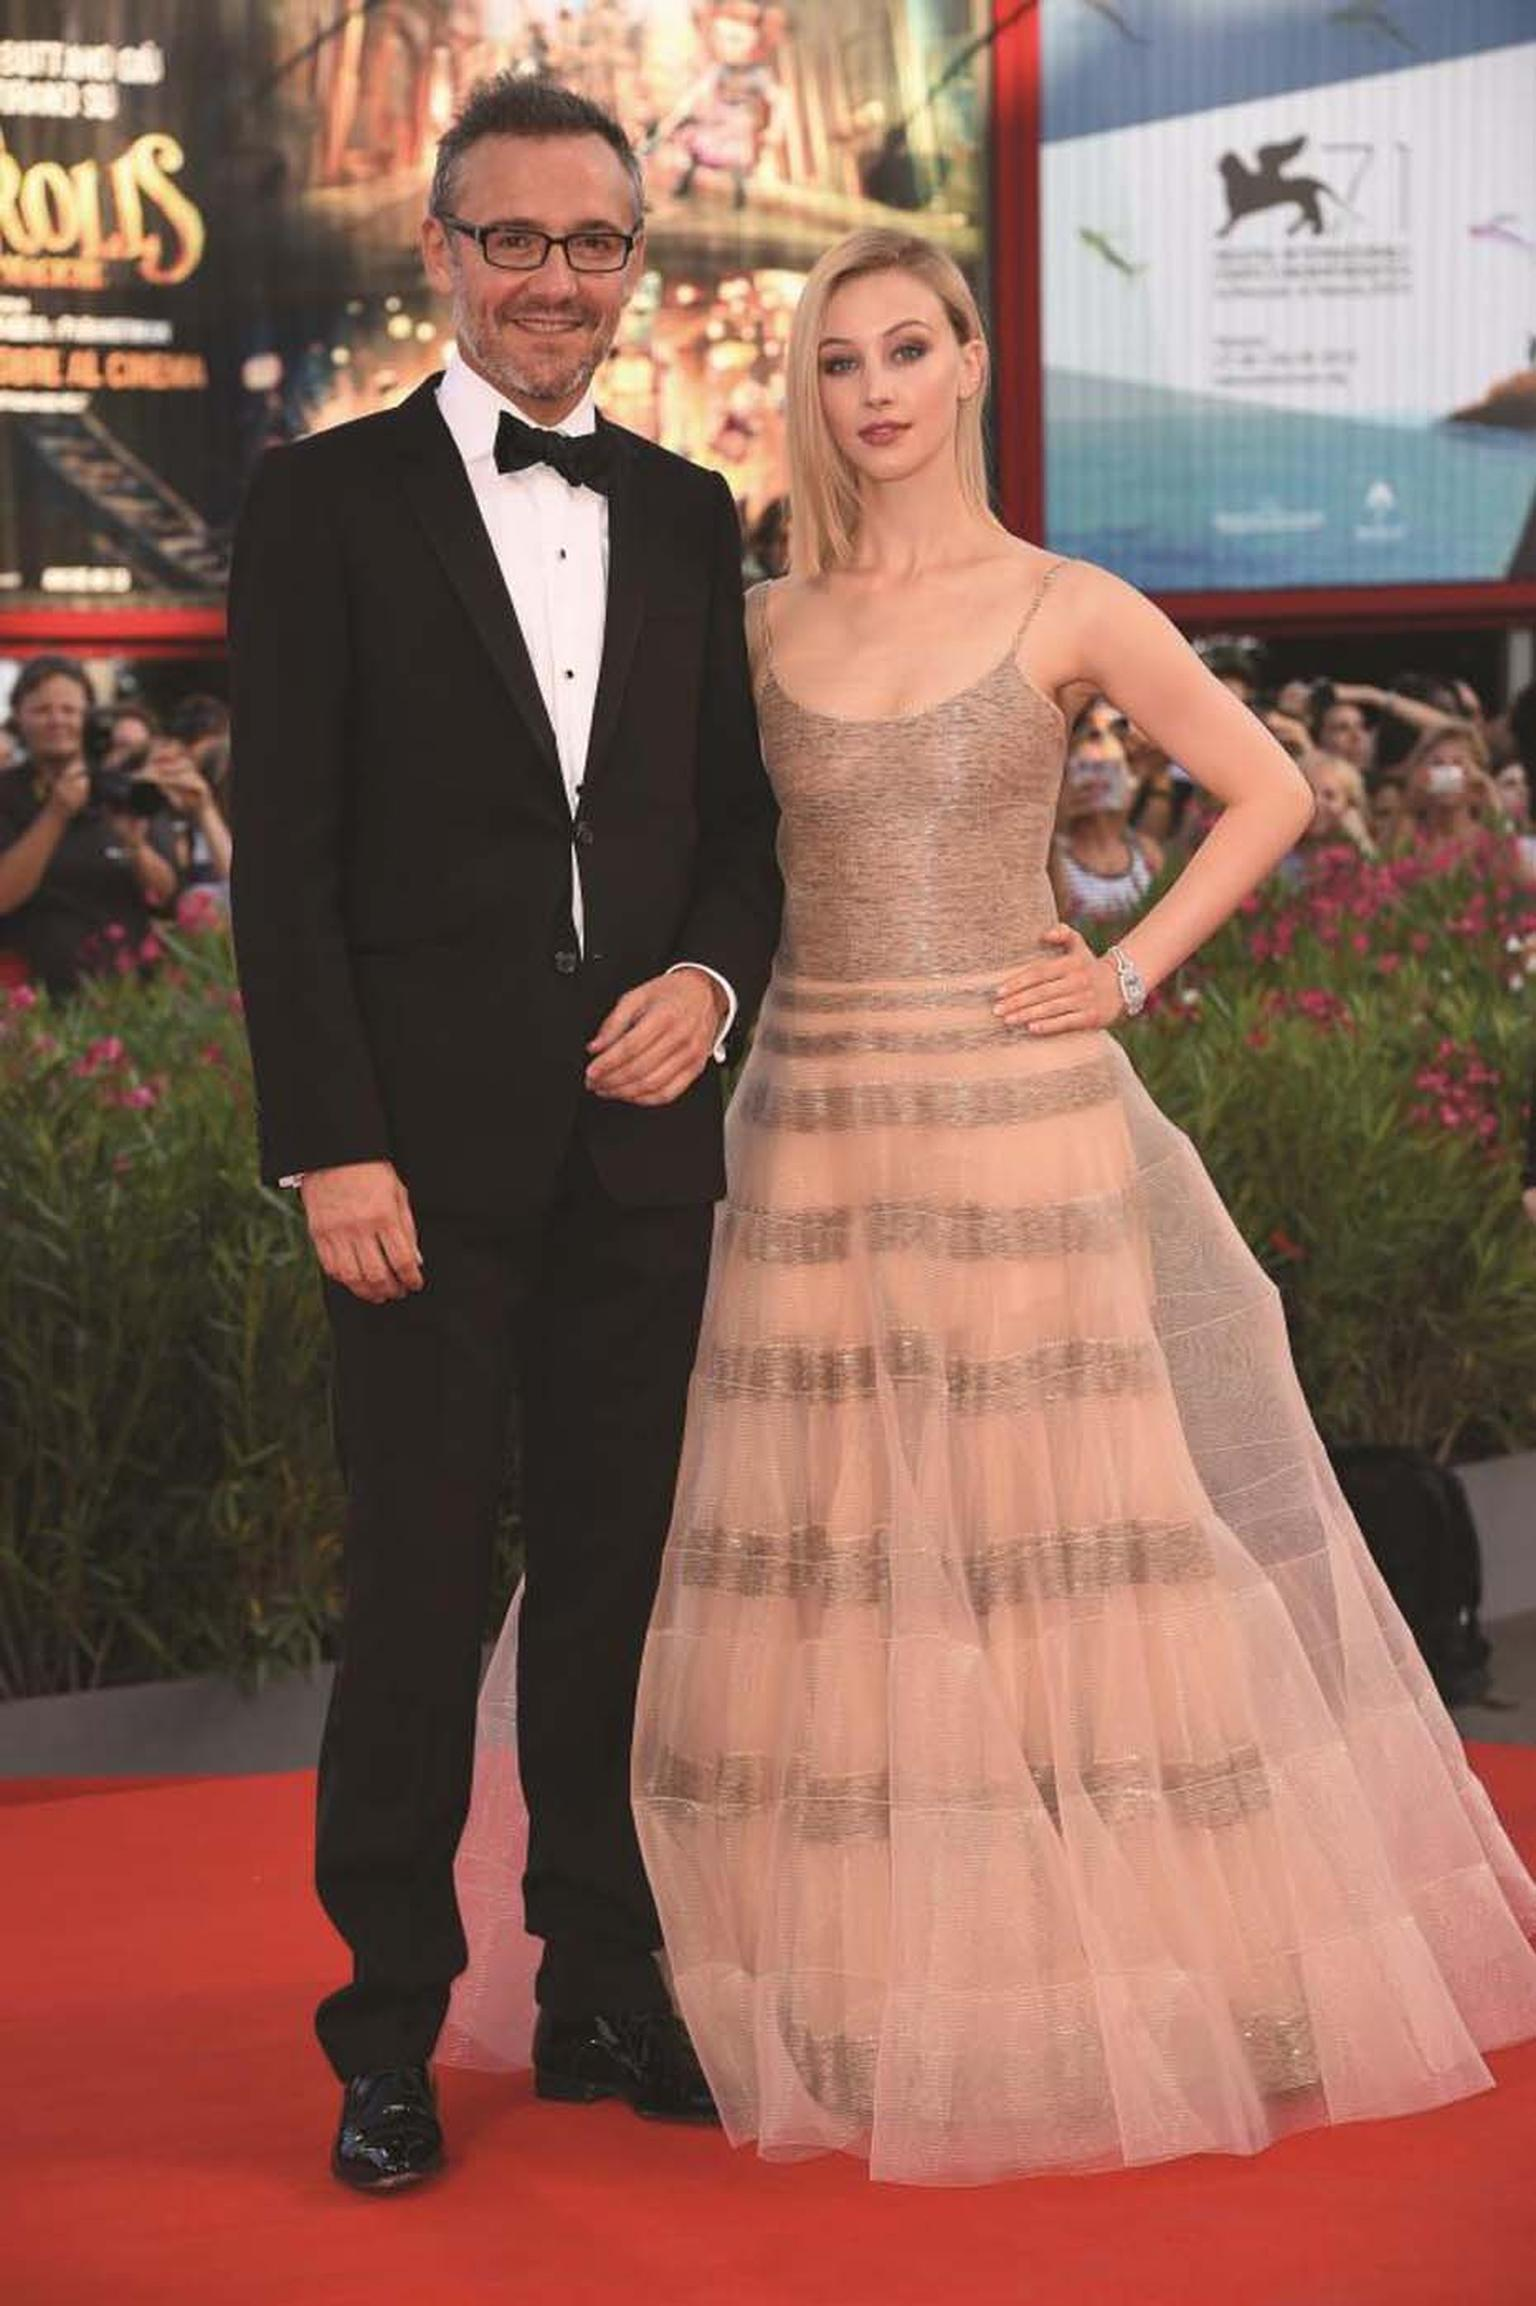 Jaeger-LeCoultre Communication Director Laurent Vinay and actress Sarah Gadon wearing the Jaeger-LeCoultre Reverso Cordonnet watch during the Venice Film Festival.